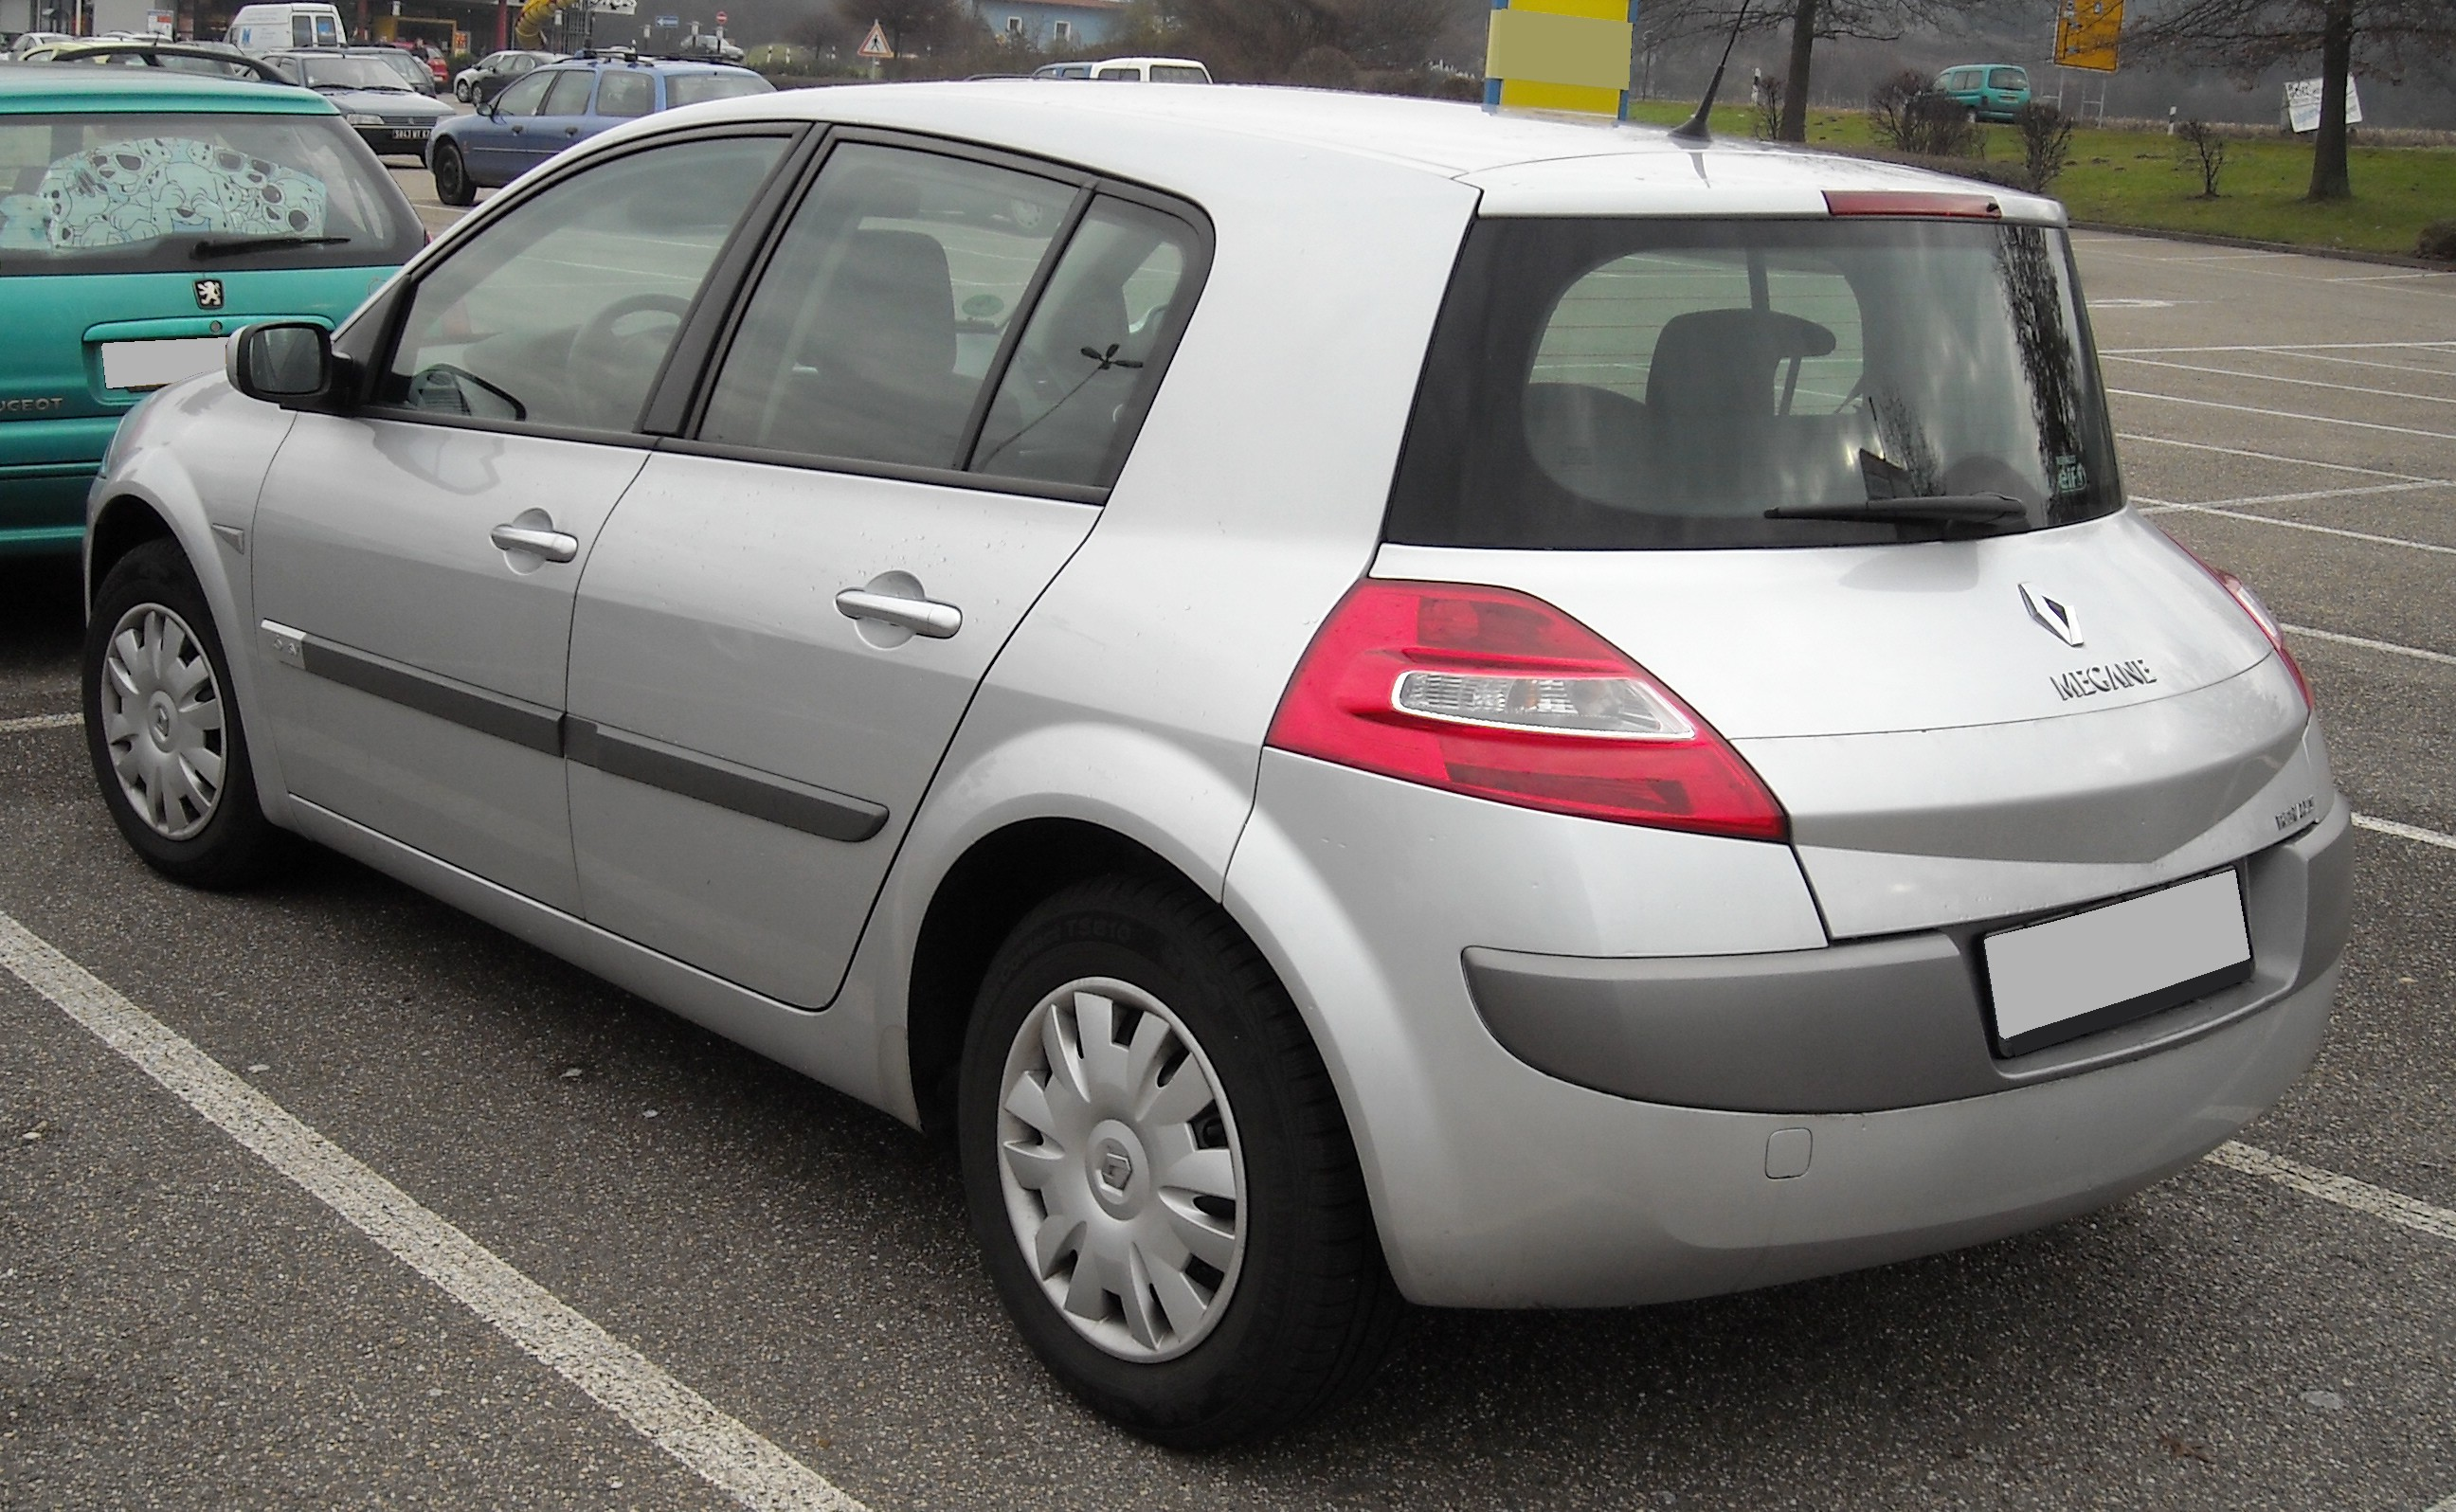 File Renault Megane Rear 20081213 Jpg Wikimedia Commons